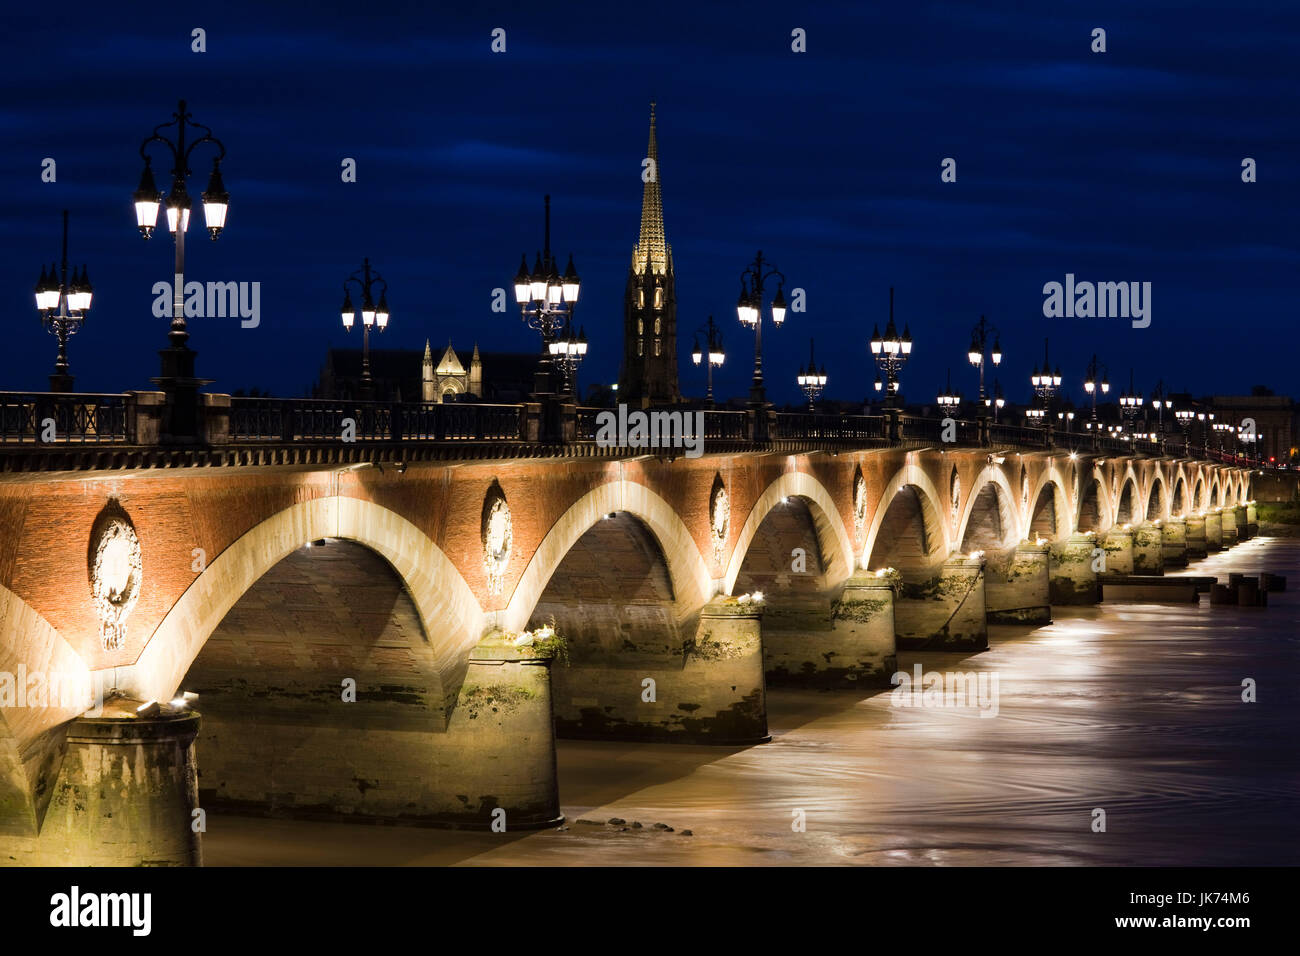 France, Aquitaine Region, Gironde Department, Bordeaux, Pont de Pierre bridge, Eglise St-Michel and Garonne River, - Stock Image